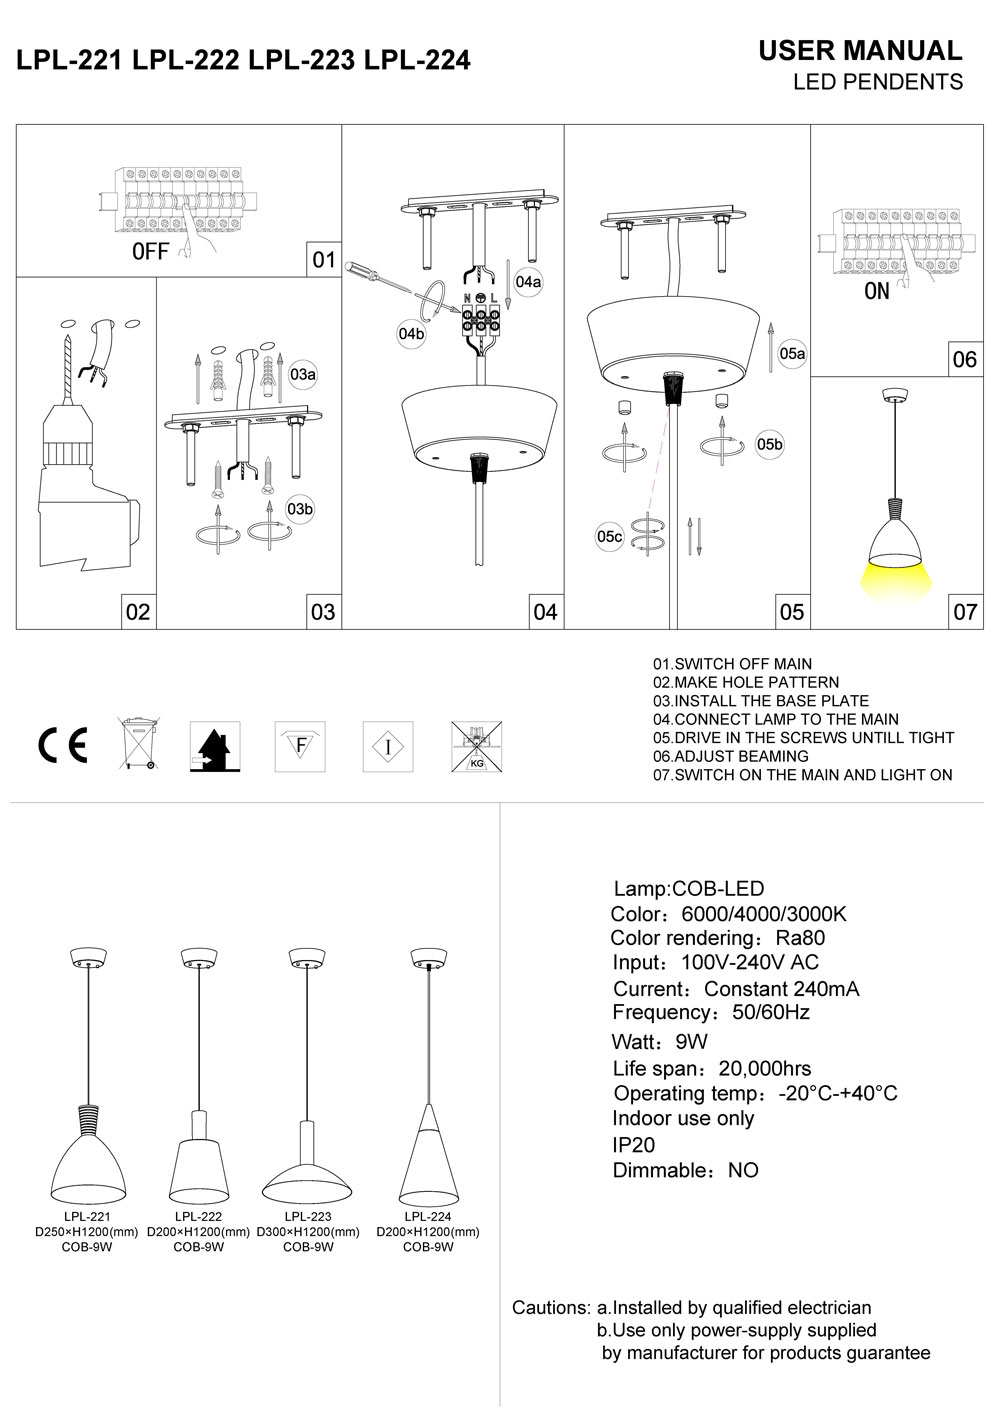 LED pendant light INSTALLATION INSTRUCTIONS